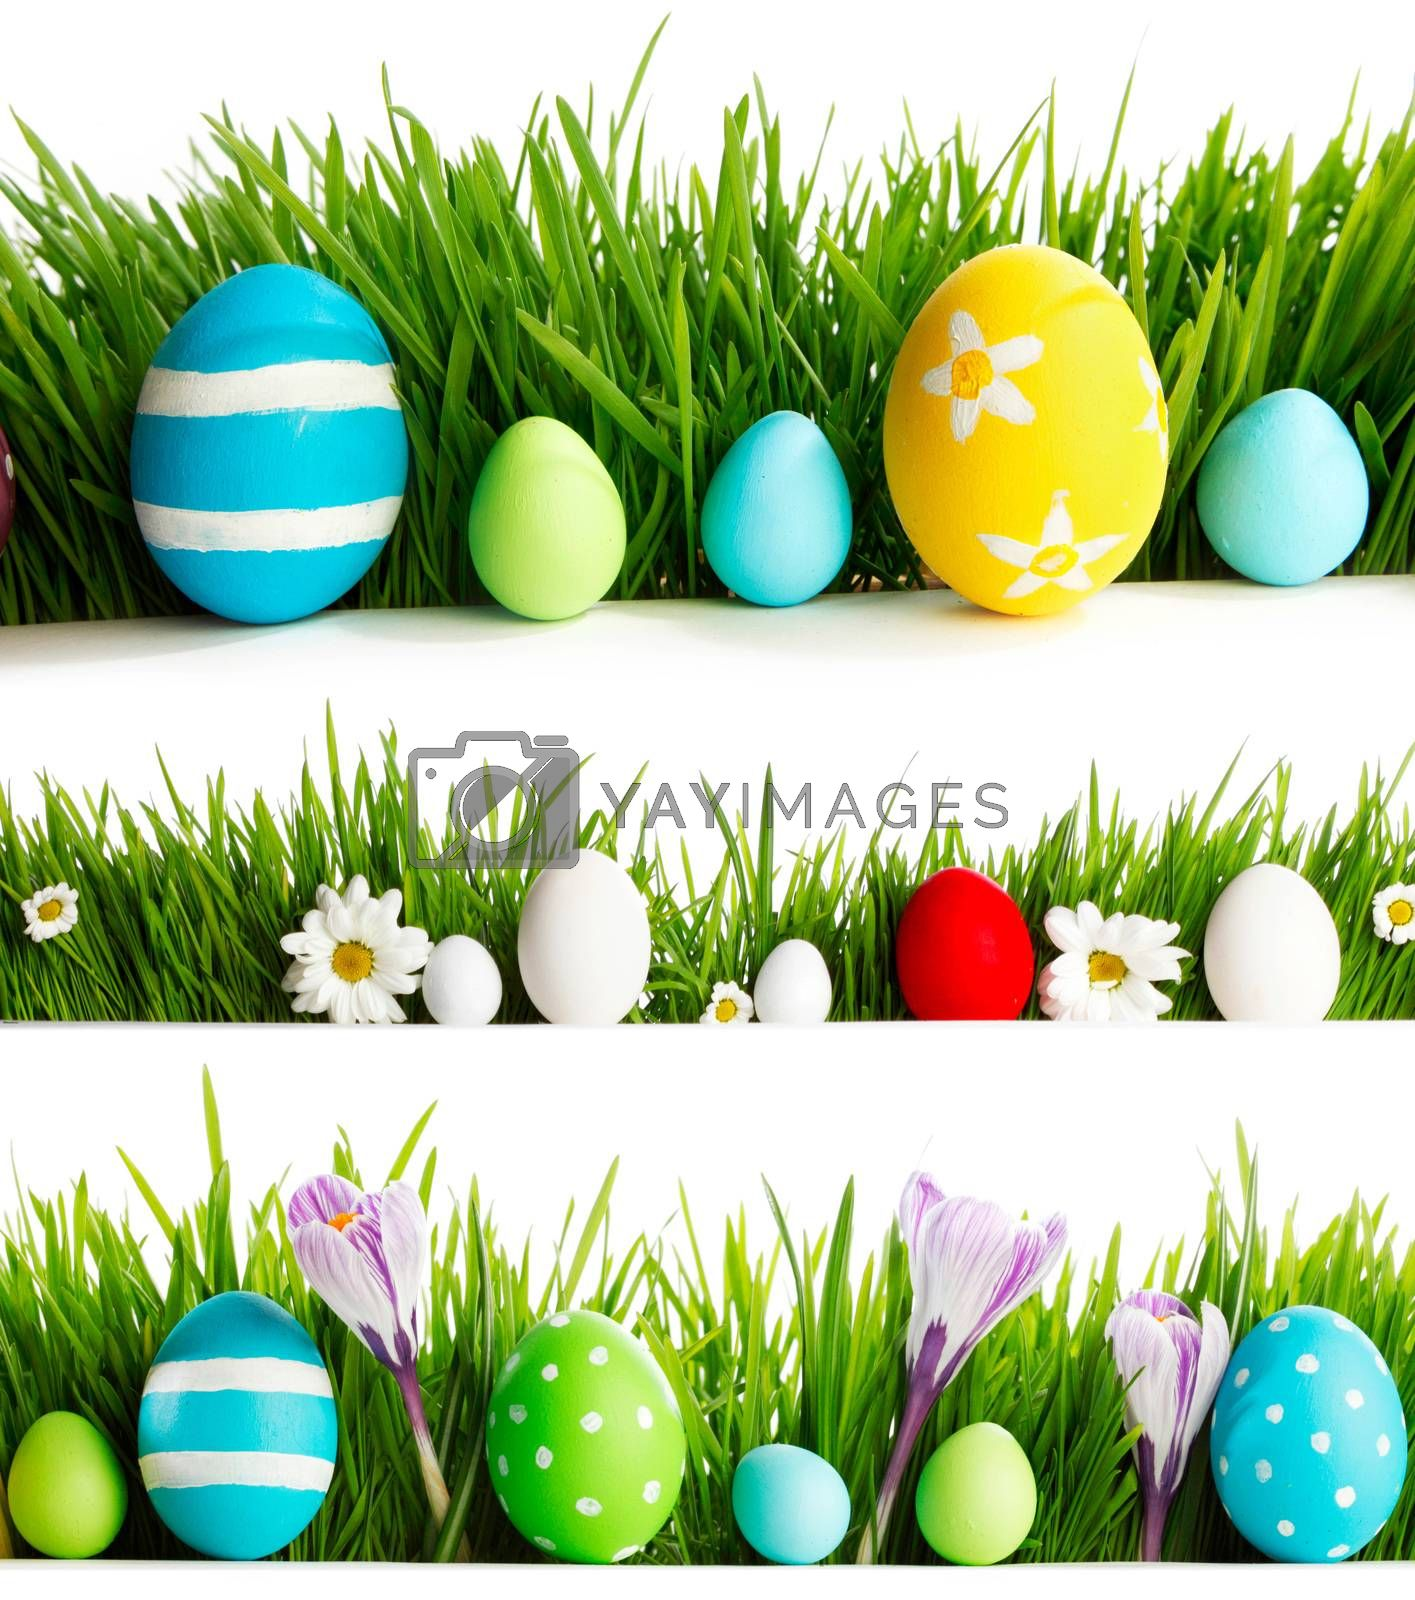 Fresh spring and Easter borders isolated on white background. Eggs, flowers and green grass.